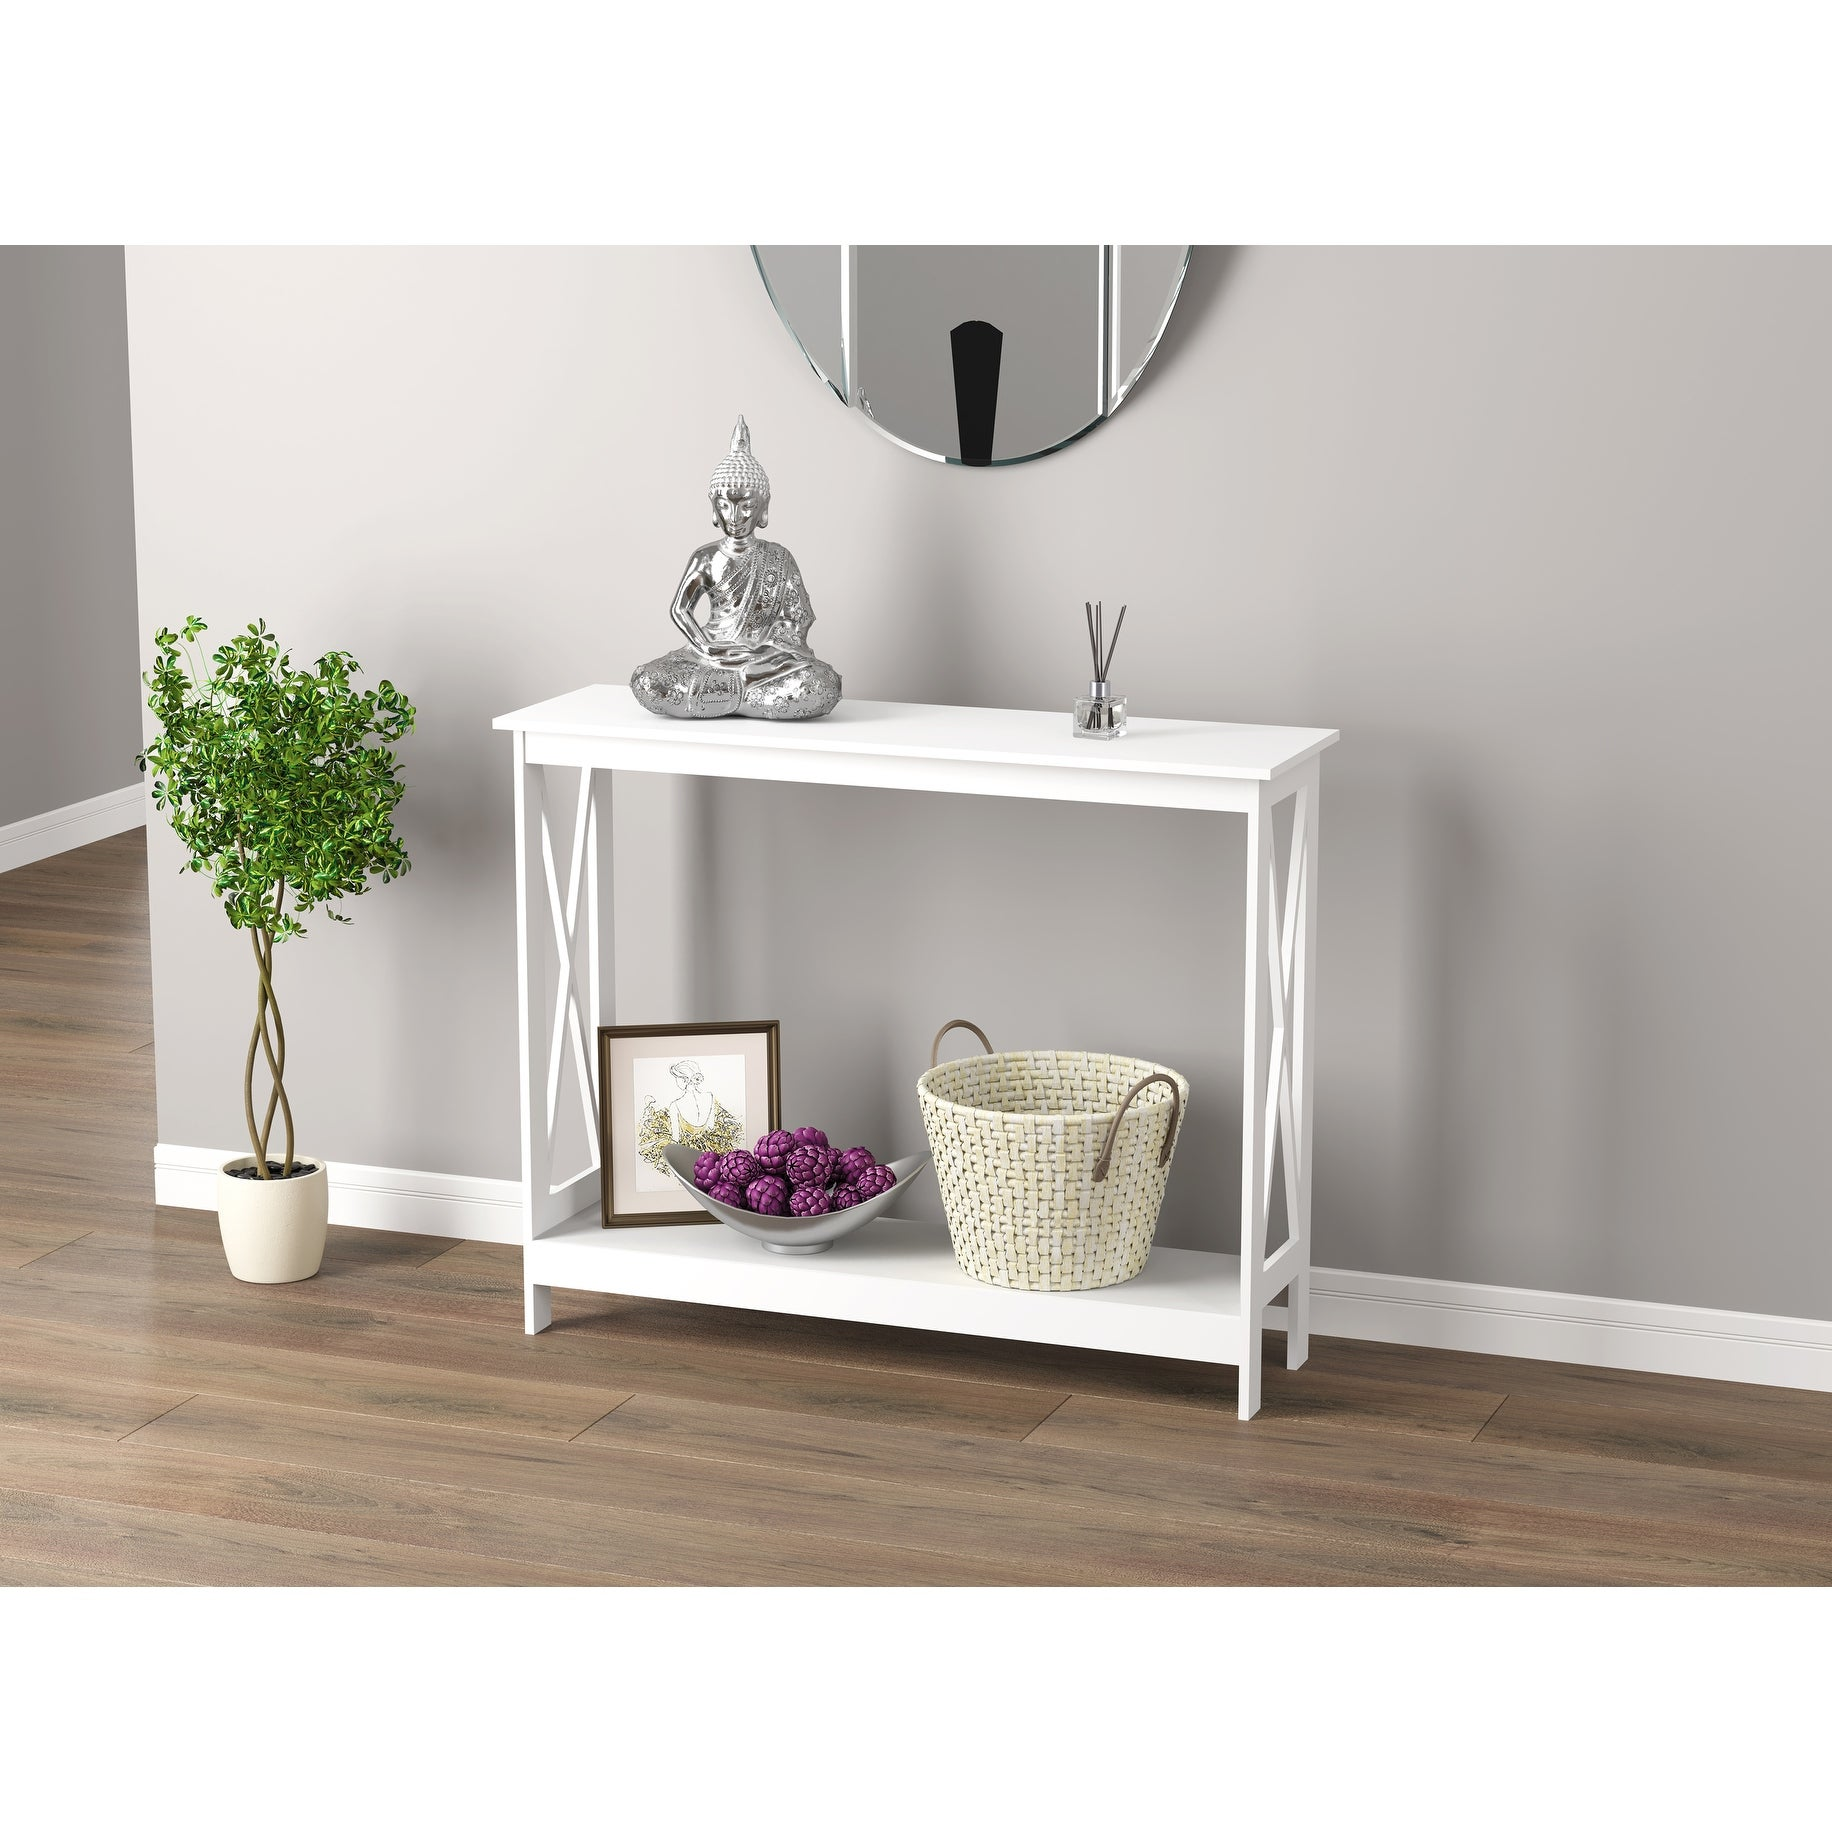 Console Table 39 5l White 1 Shelf 39 5 X 11 75 X 31 5 Overstock 31748735